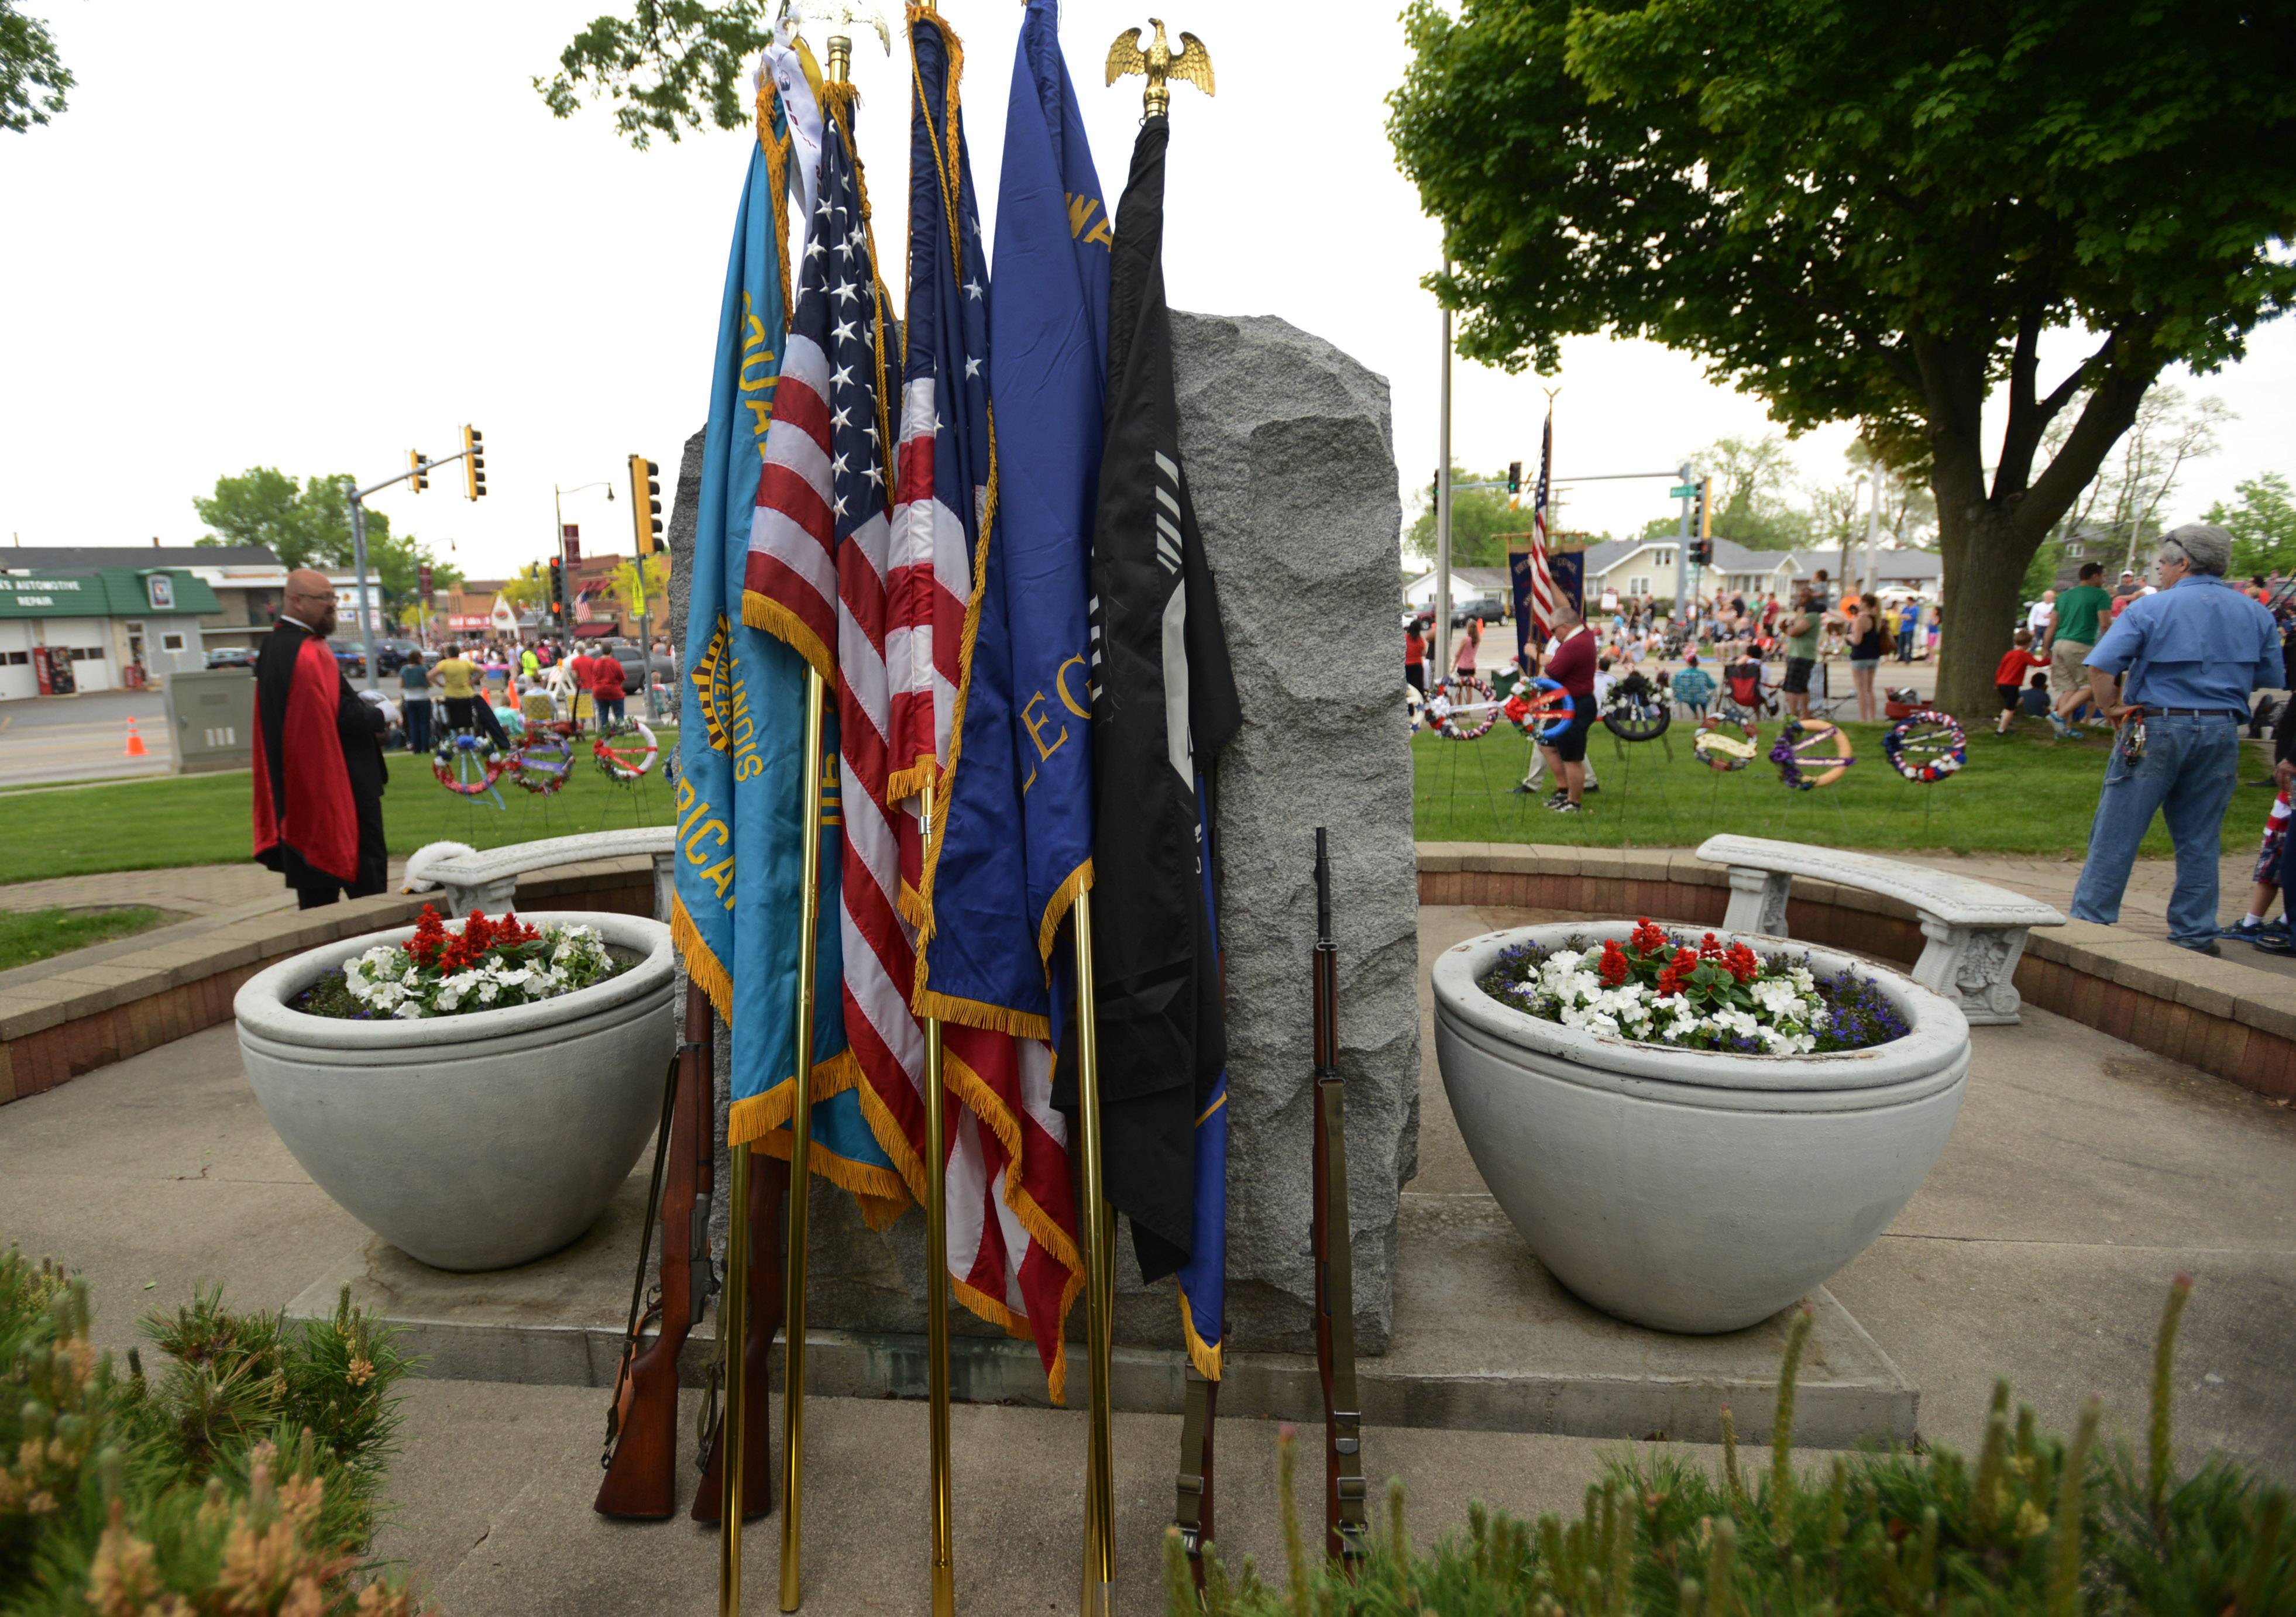 Flags and rifles rest on a memorial in Wauconda Monday as officials wait for the parade to finish before starting the Memorial Day ceremony.